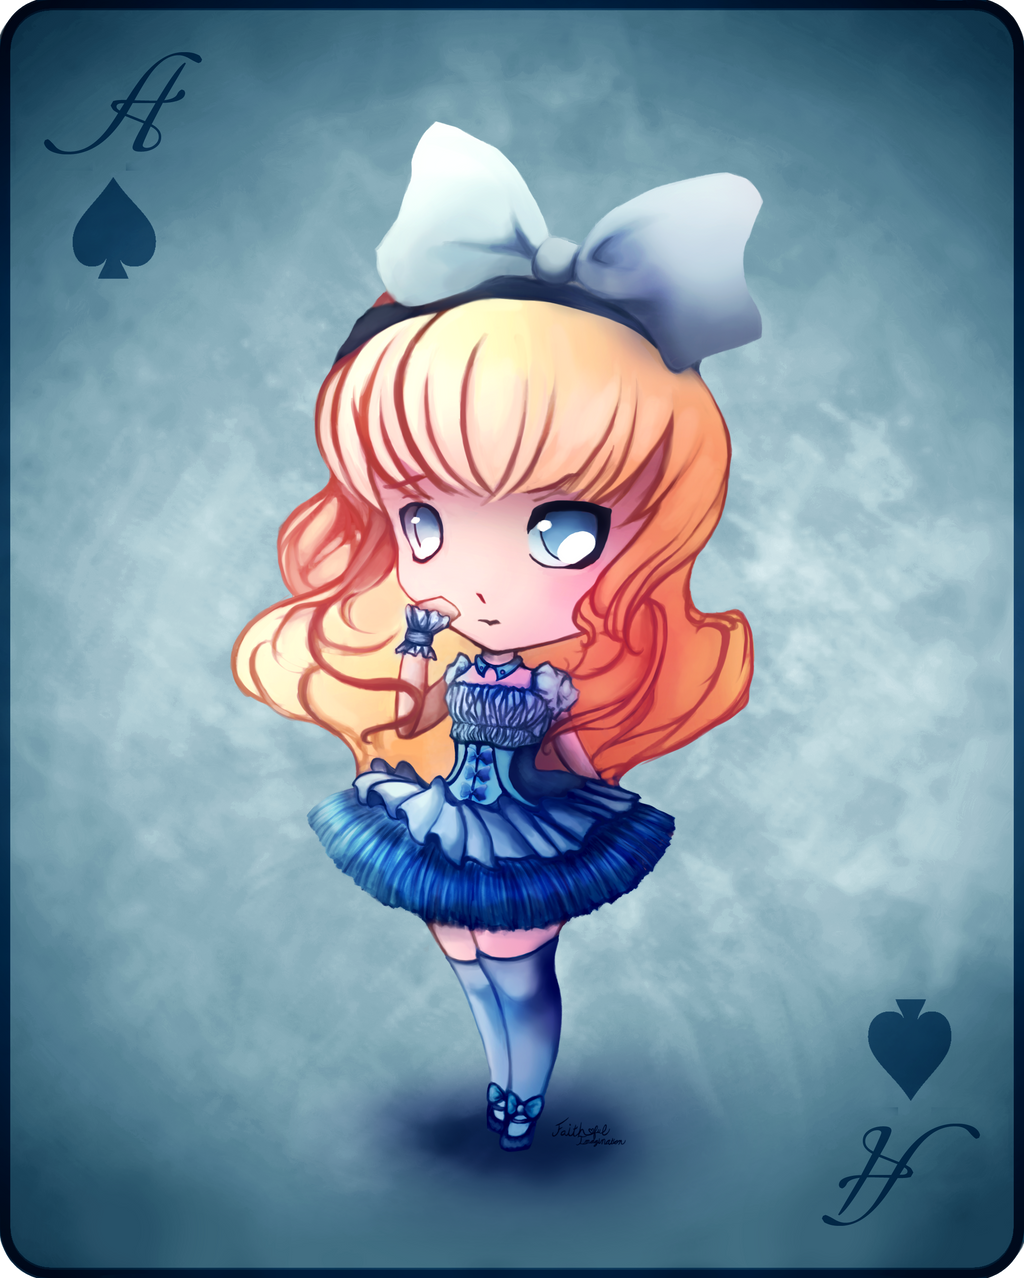 chibi alice in wonderland by faithful imagination on deviantart